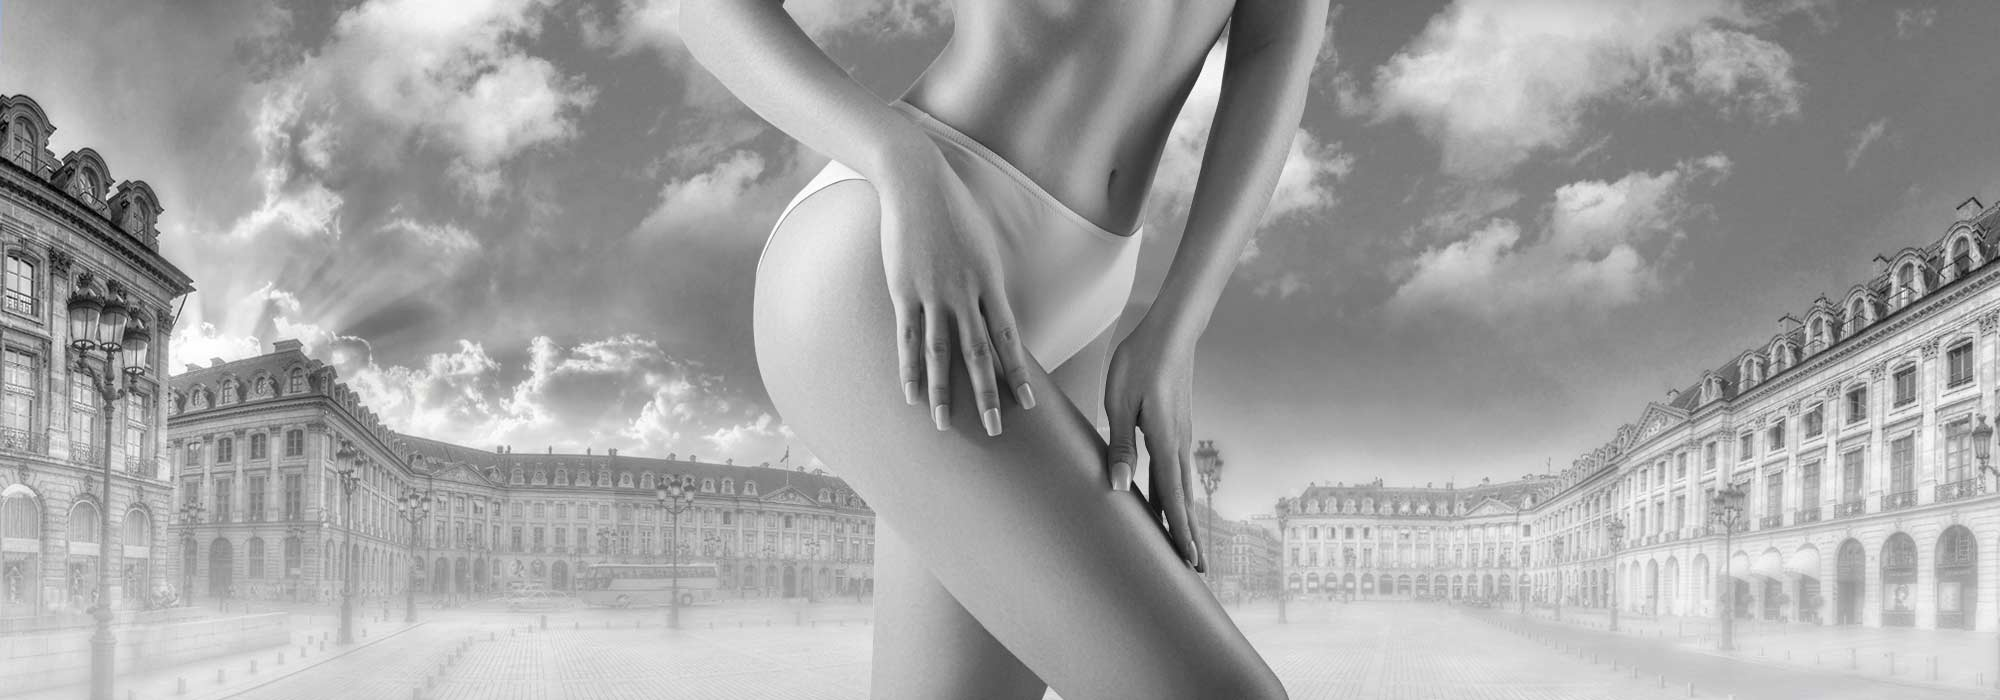 Cryolipolyse Coolsculpting Paris Dr Cozanet